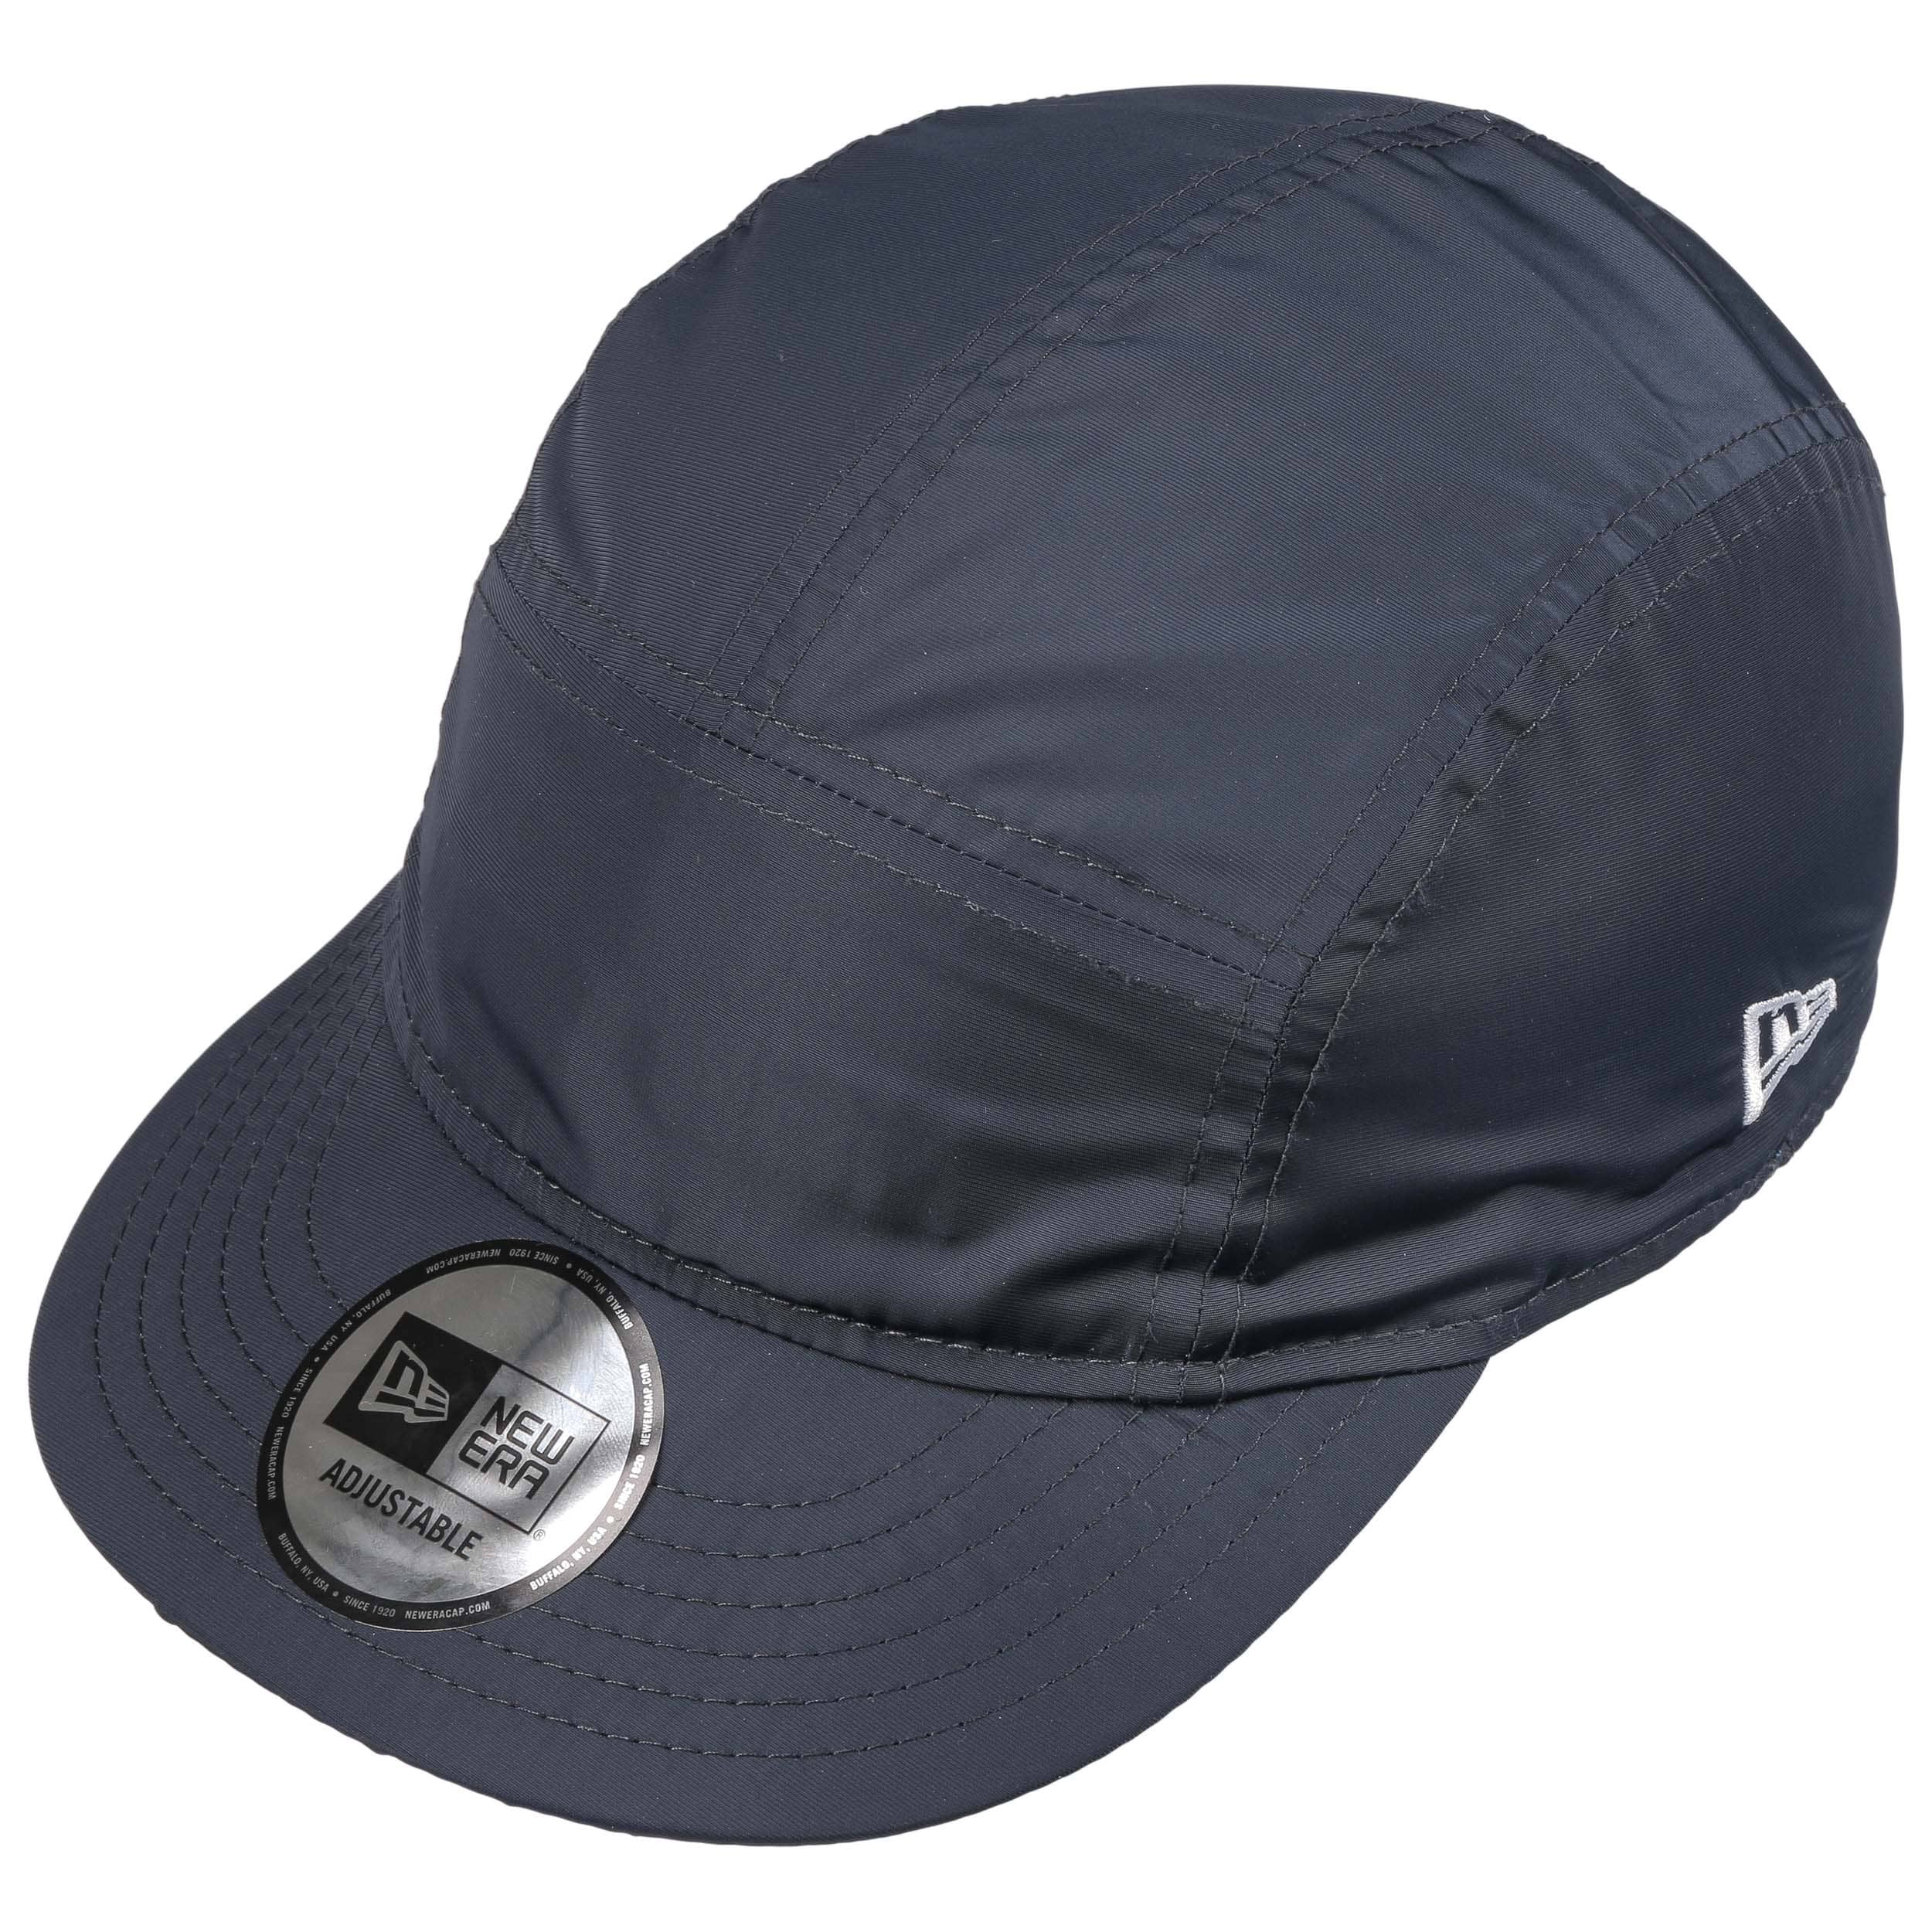 430729f7b8d2bf Reversible Rain Camper Cap by New Era - navy 1 ...